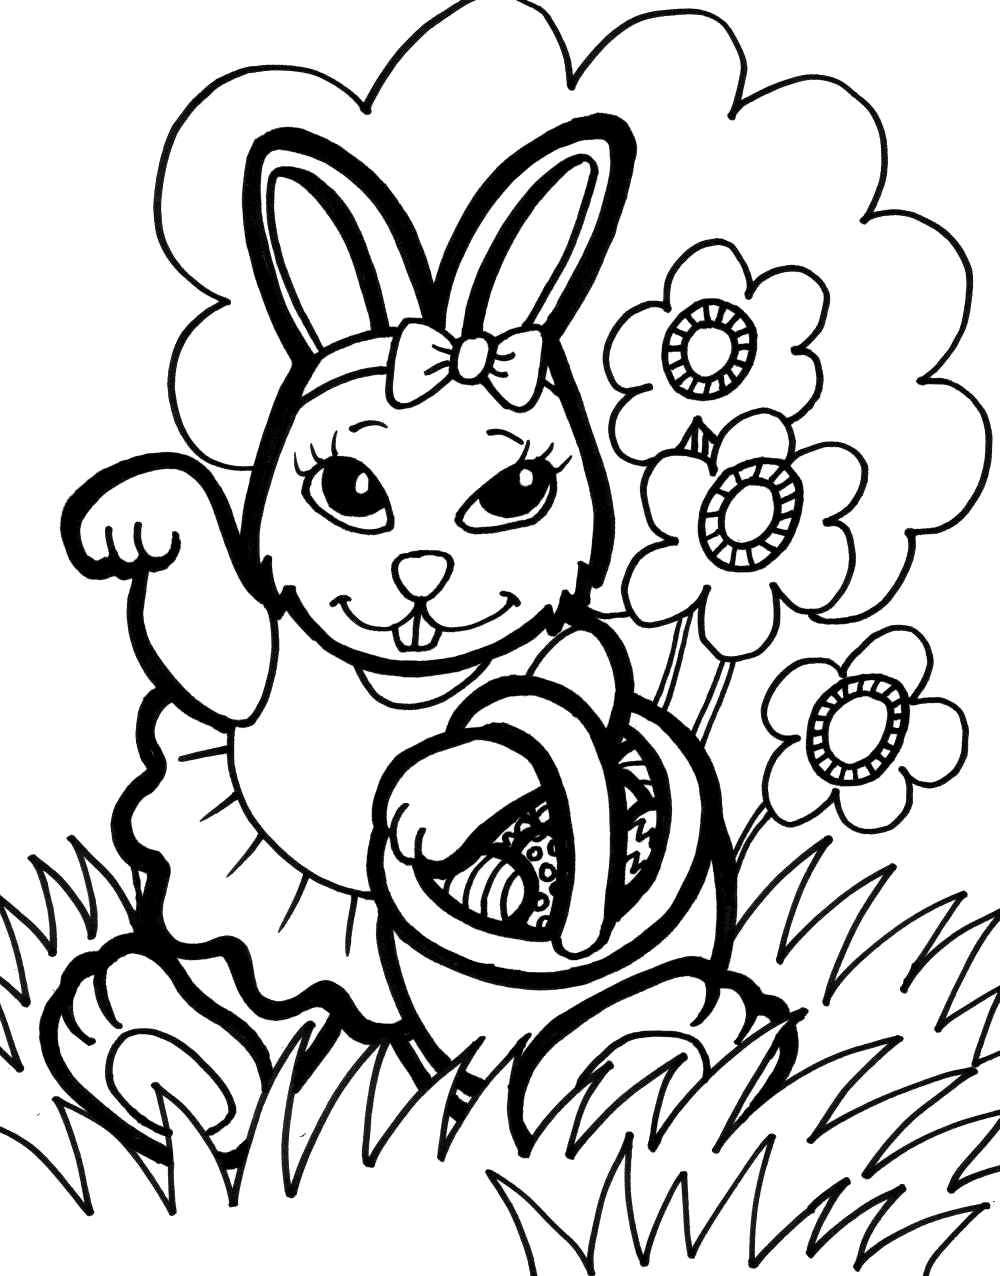 bunnies coloring pages bunny coloring pages best coloring pages for kids pages coloring bunnies